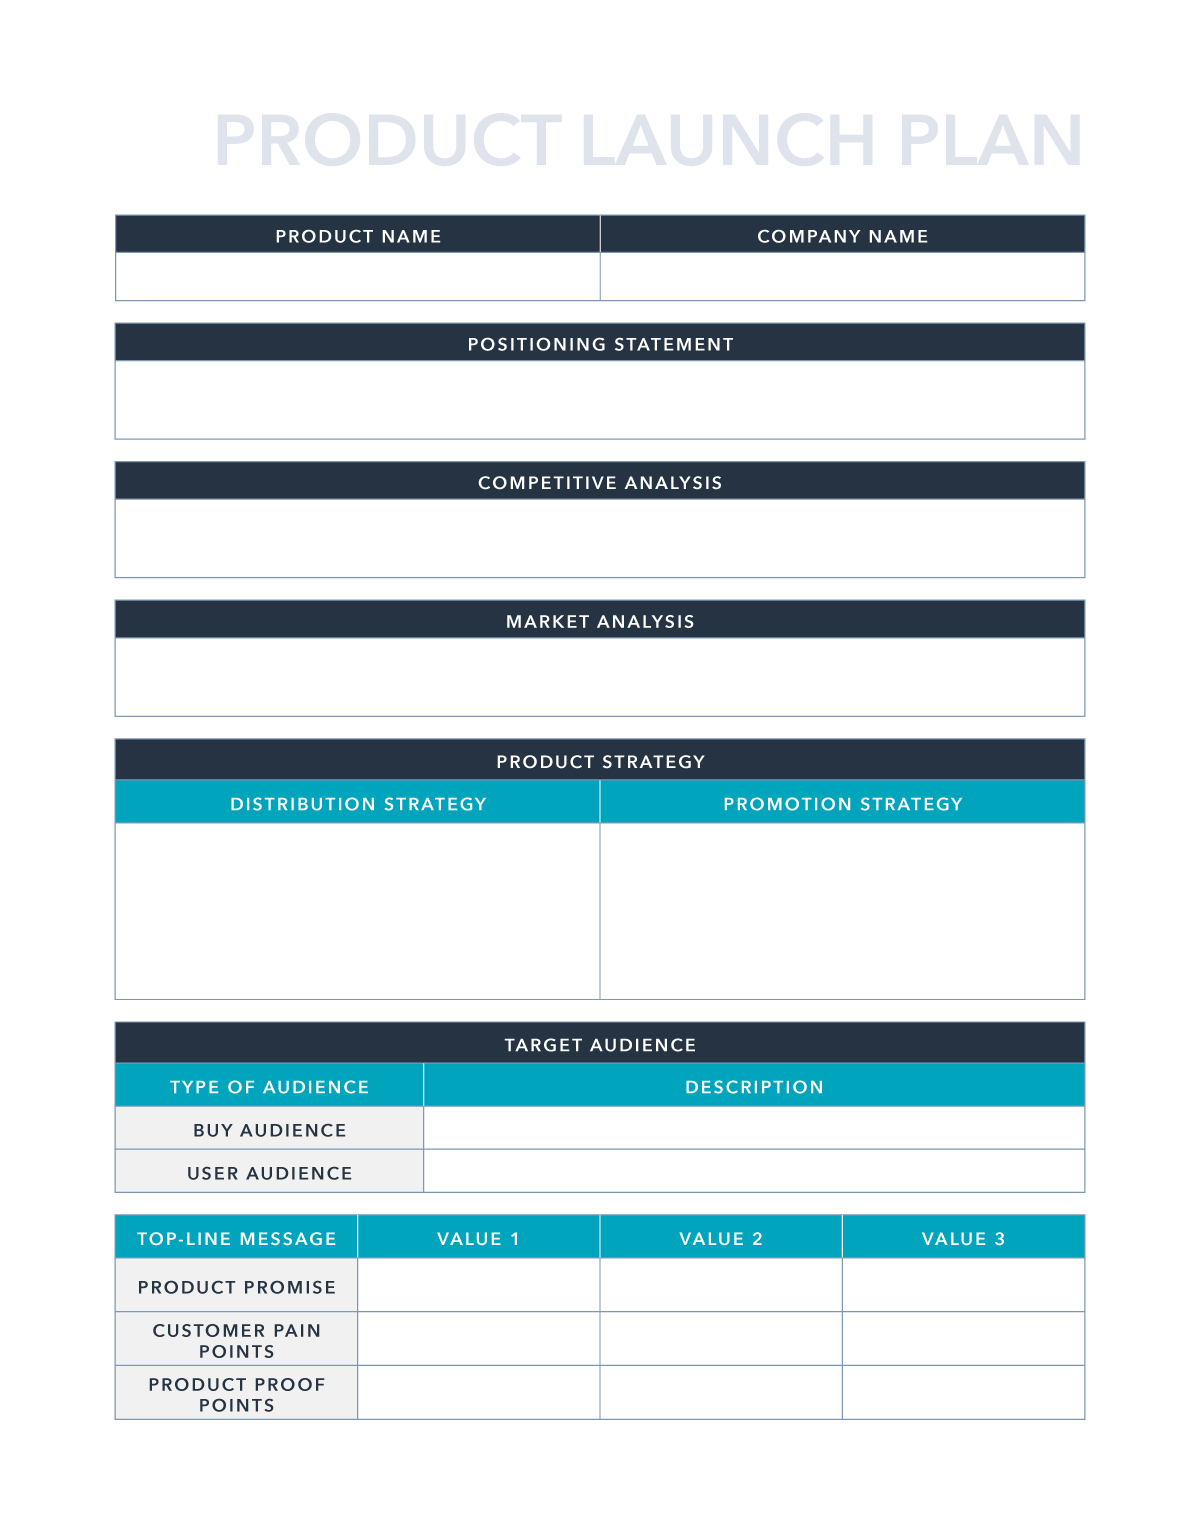 Free Product Launch Plan Template for PDF   Excel   Google Sheets ...